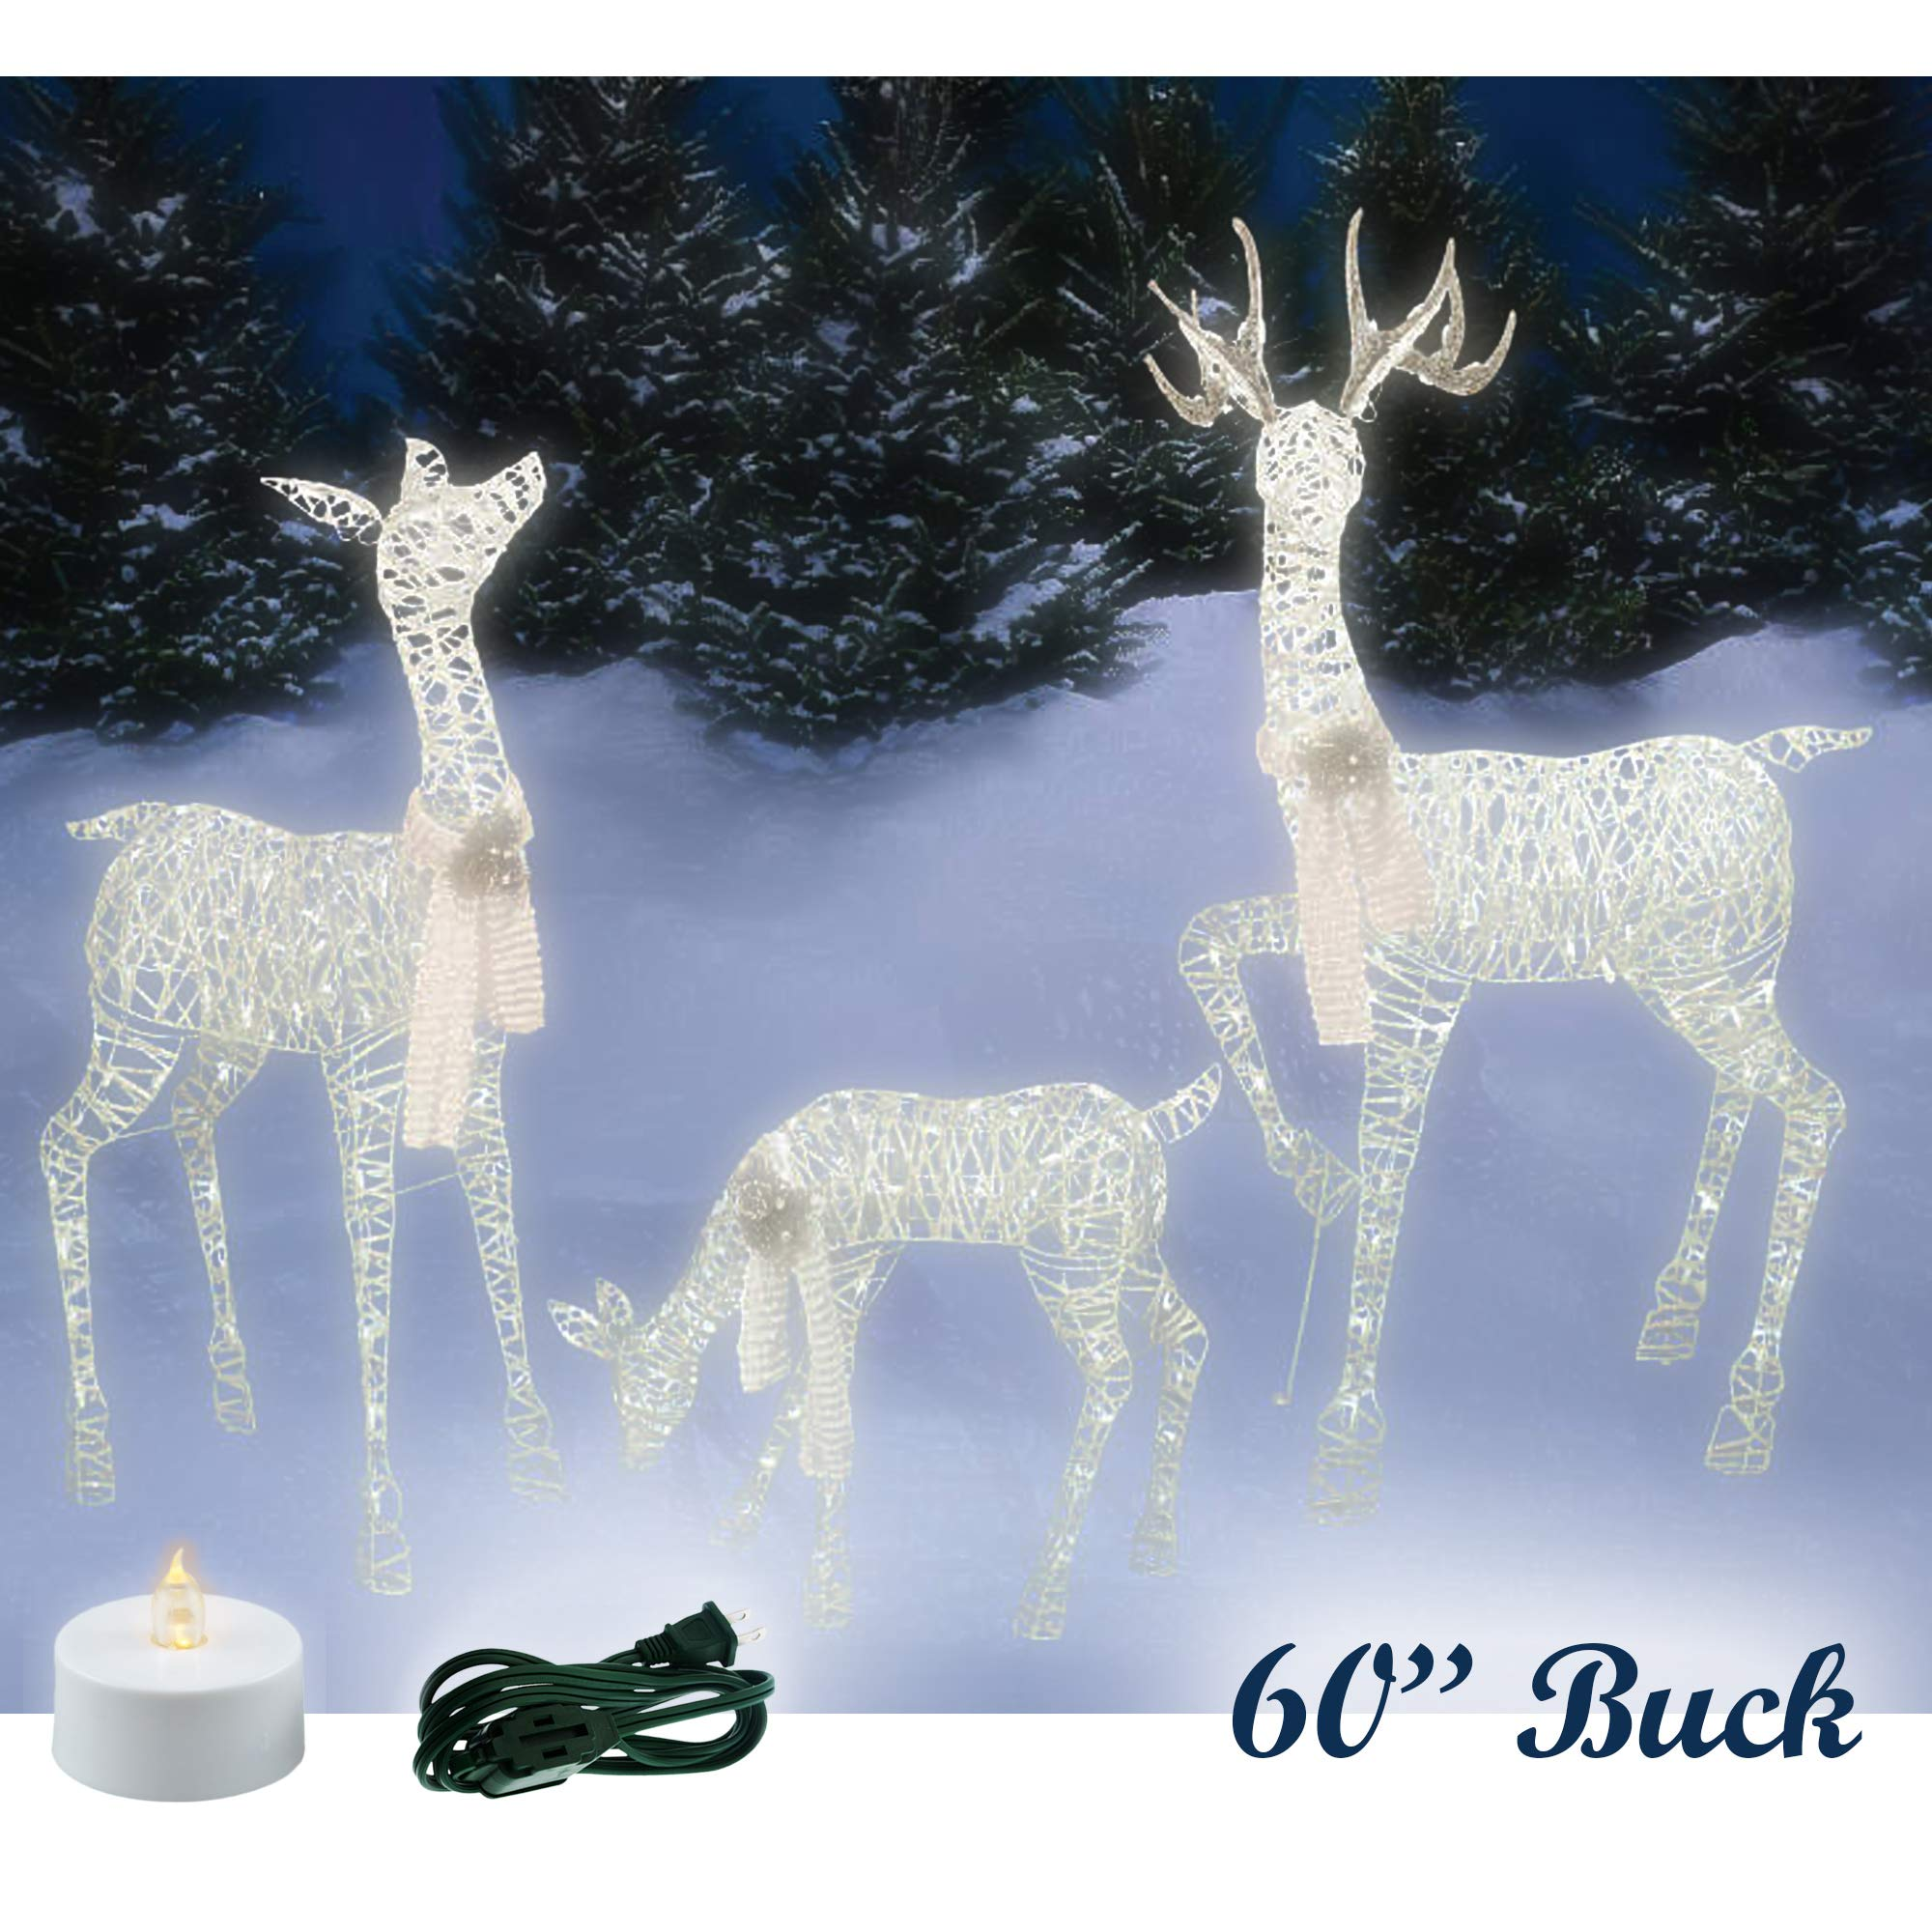 """Classy Yard Lighted 3 Deer Lawn Christmas Outdoor Decorations 60"""" Tall"""